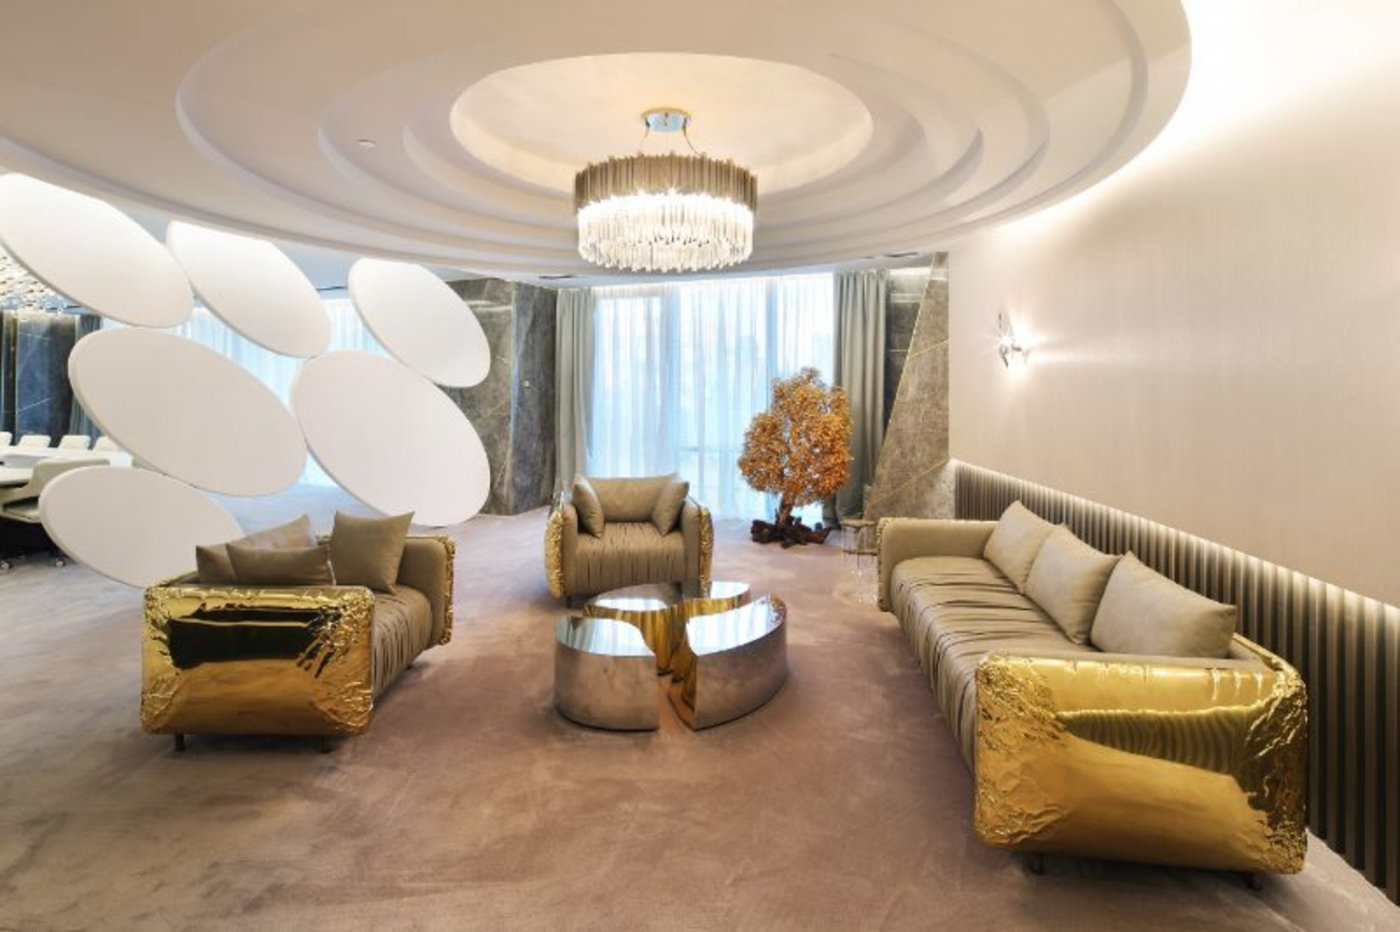 office design A Golden And Imposing Office Design By Sicilia Shine A Luxury And Contemporary Office Design By Sicilia Shine 1 1400x932